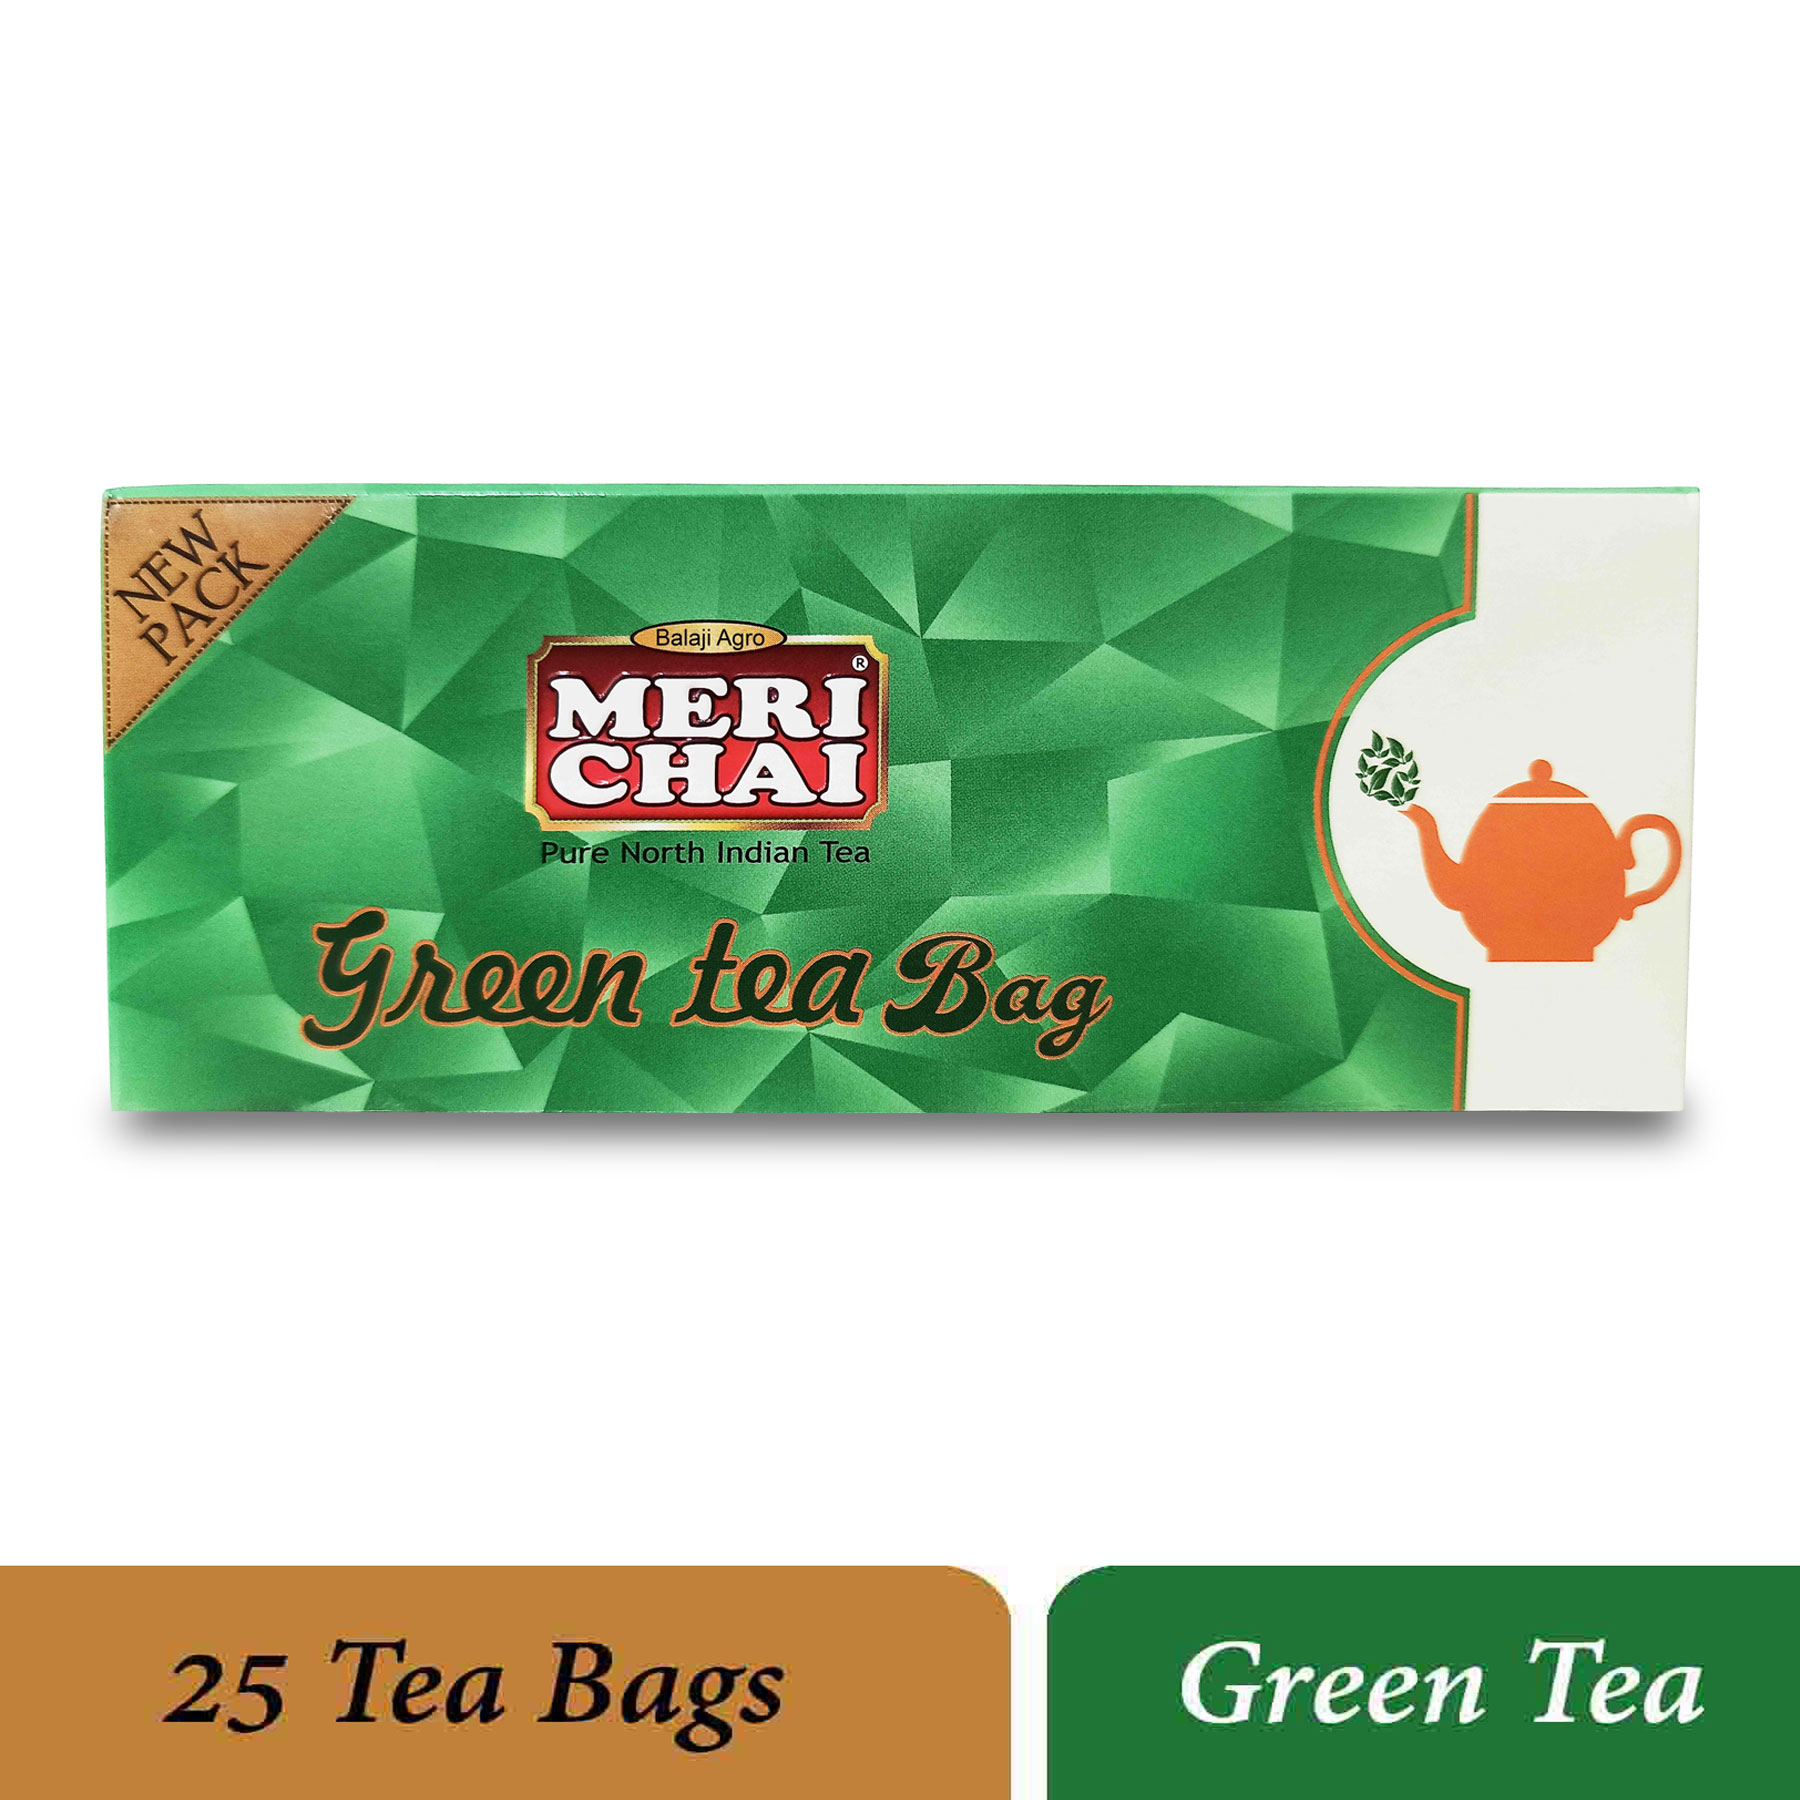 MERI CHAI Pure North Indian Green Tea Bag 25 Tea Box